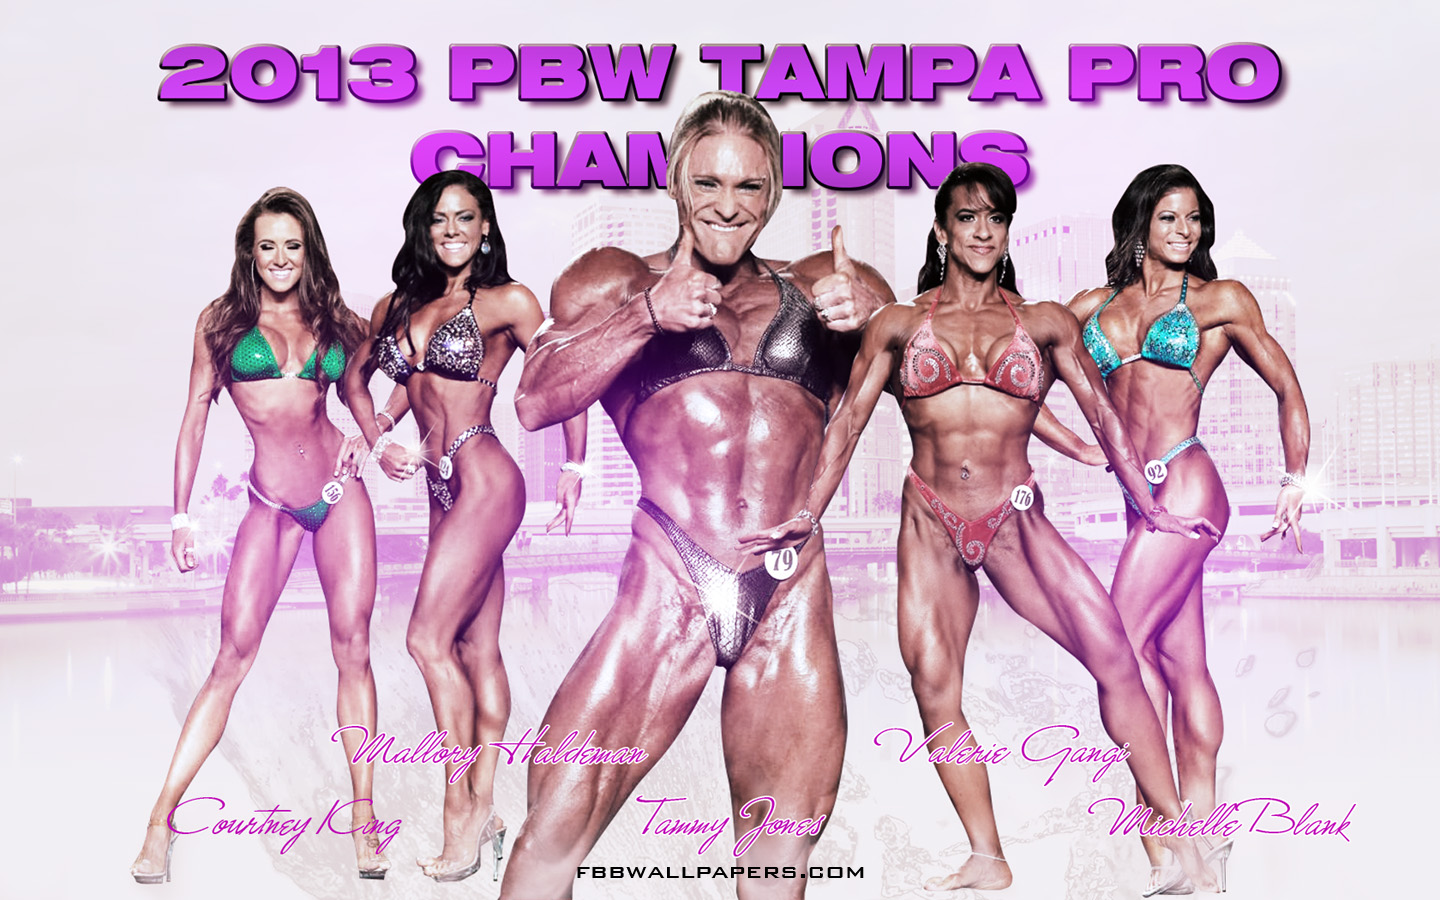 2013 PBW Tampa Pro Women Champions 1440 by 900 Wallpaper